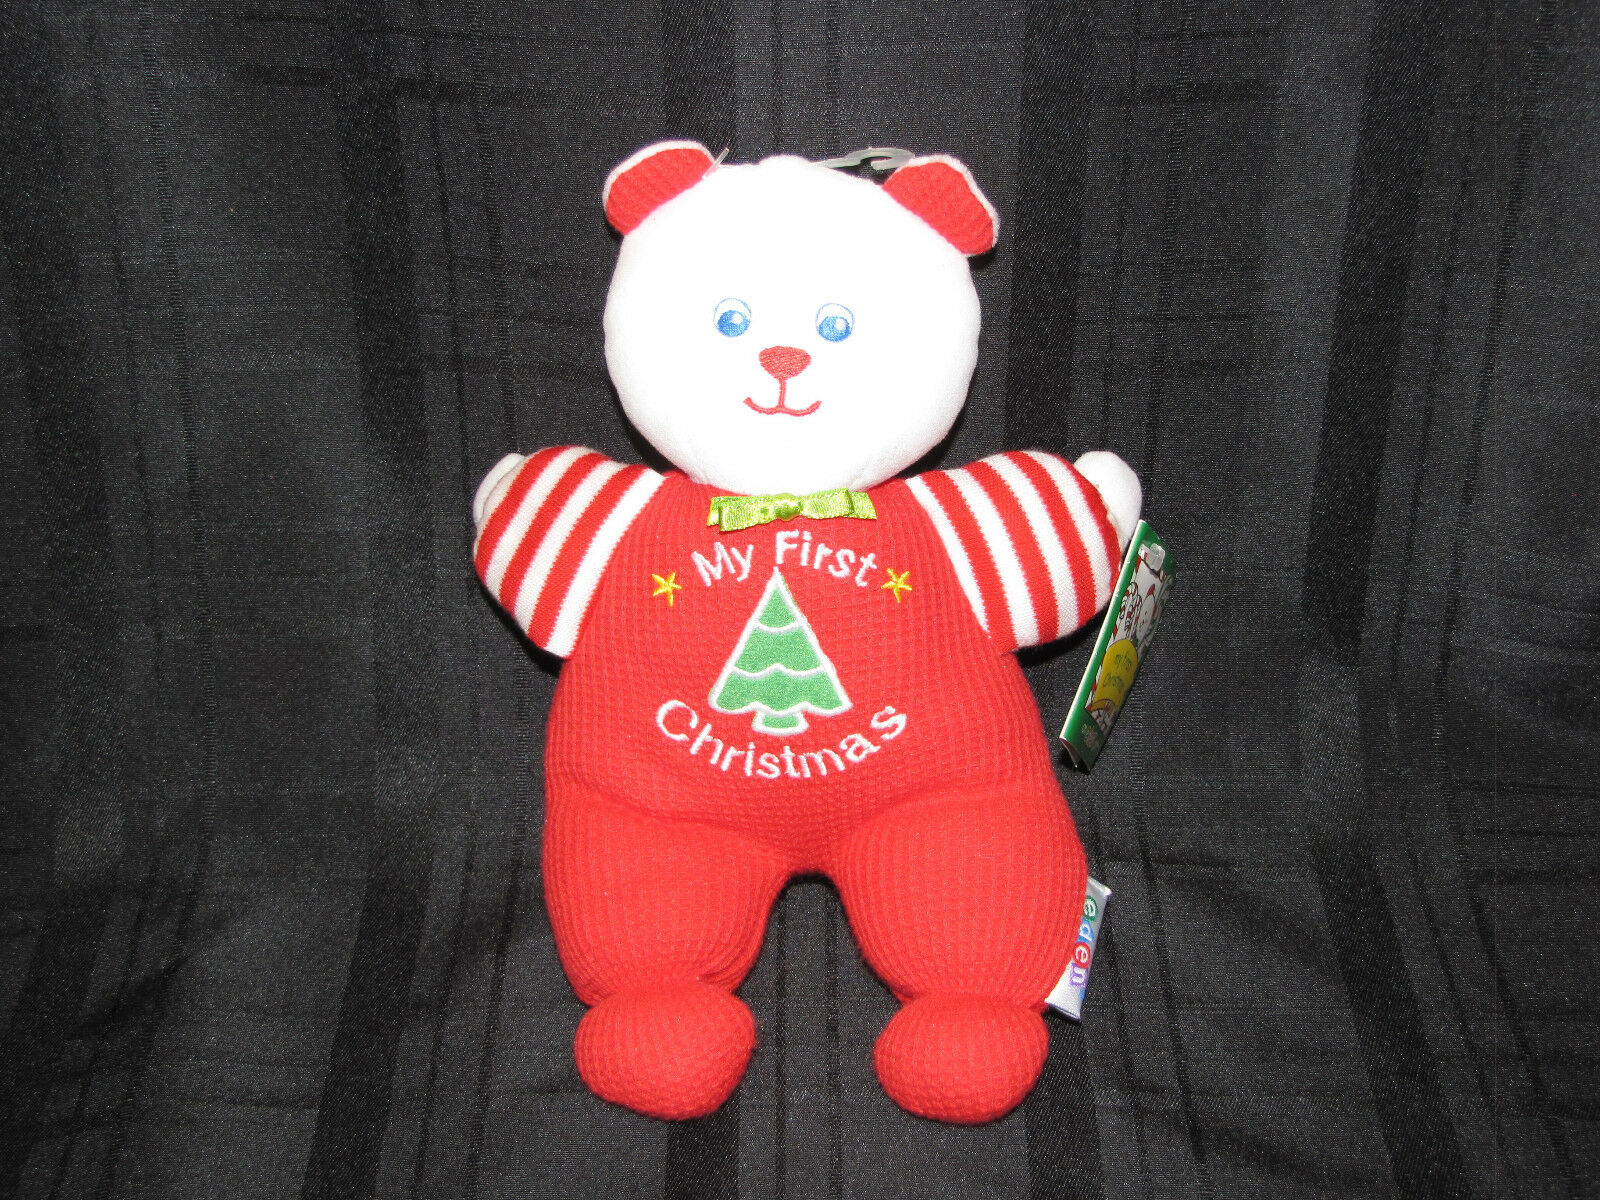 EDEN MY FIRST XMAS STUFFED PLUSH THERMAL TEDDY BEAR RATTLE RED STRIPE TOY NEW